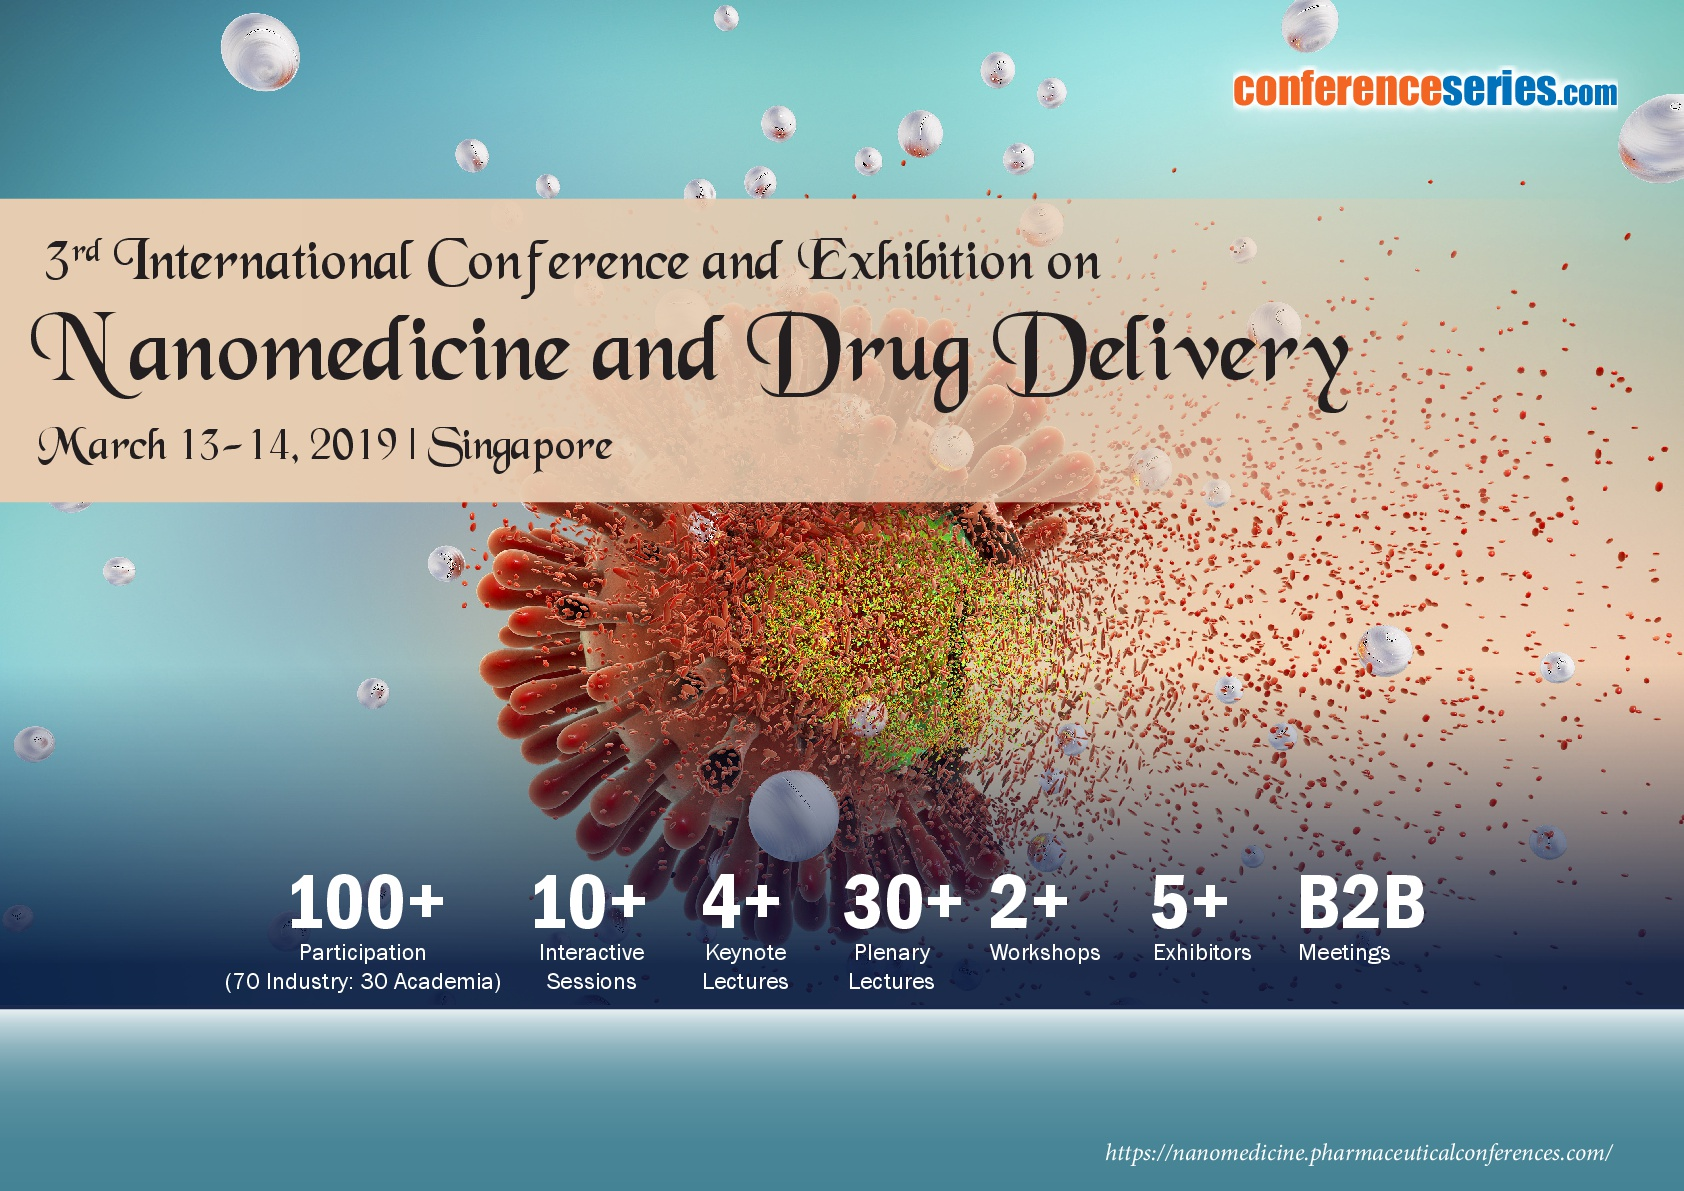 3rd International Conference and Exhibition on  Nanomedicine and Drug Delivery, Singapore, South East, Singapore